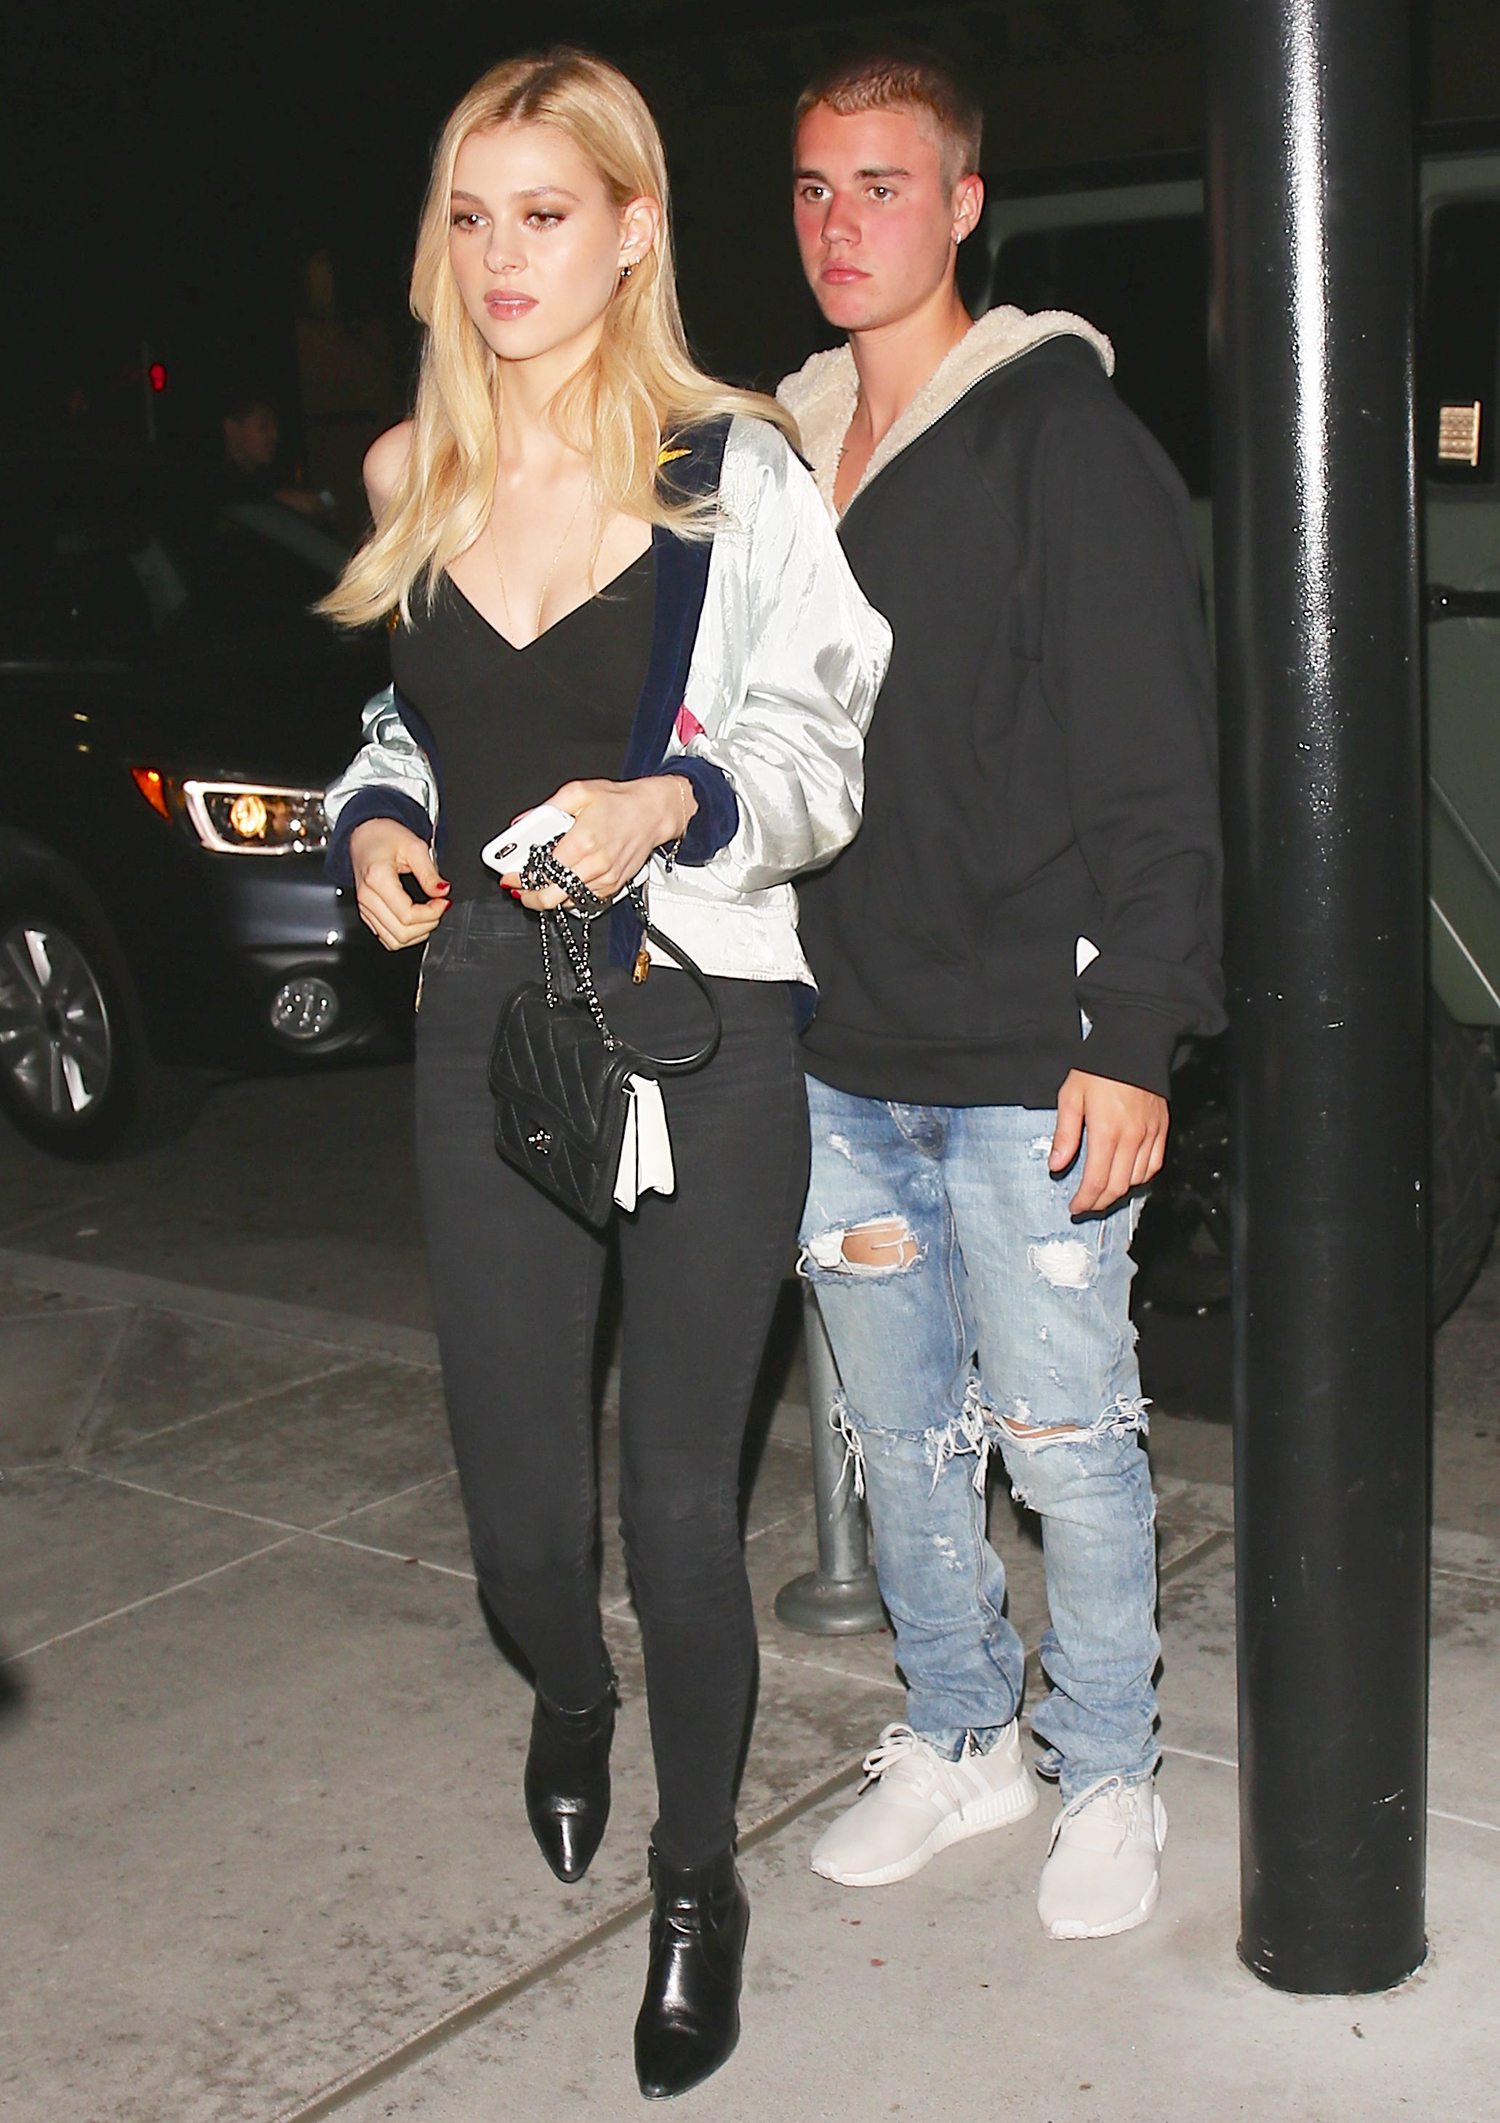 Justin Bieber and Nicola Peltz